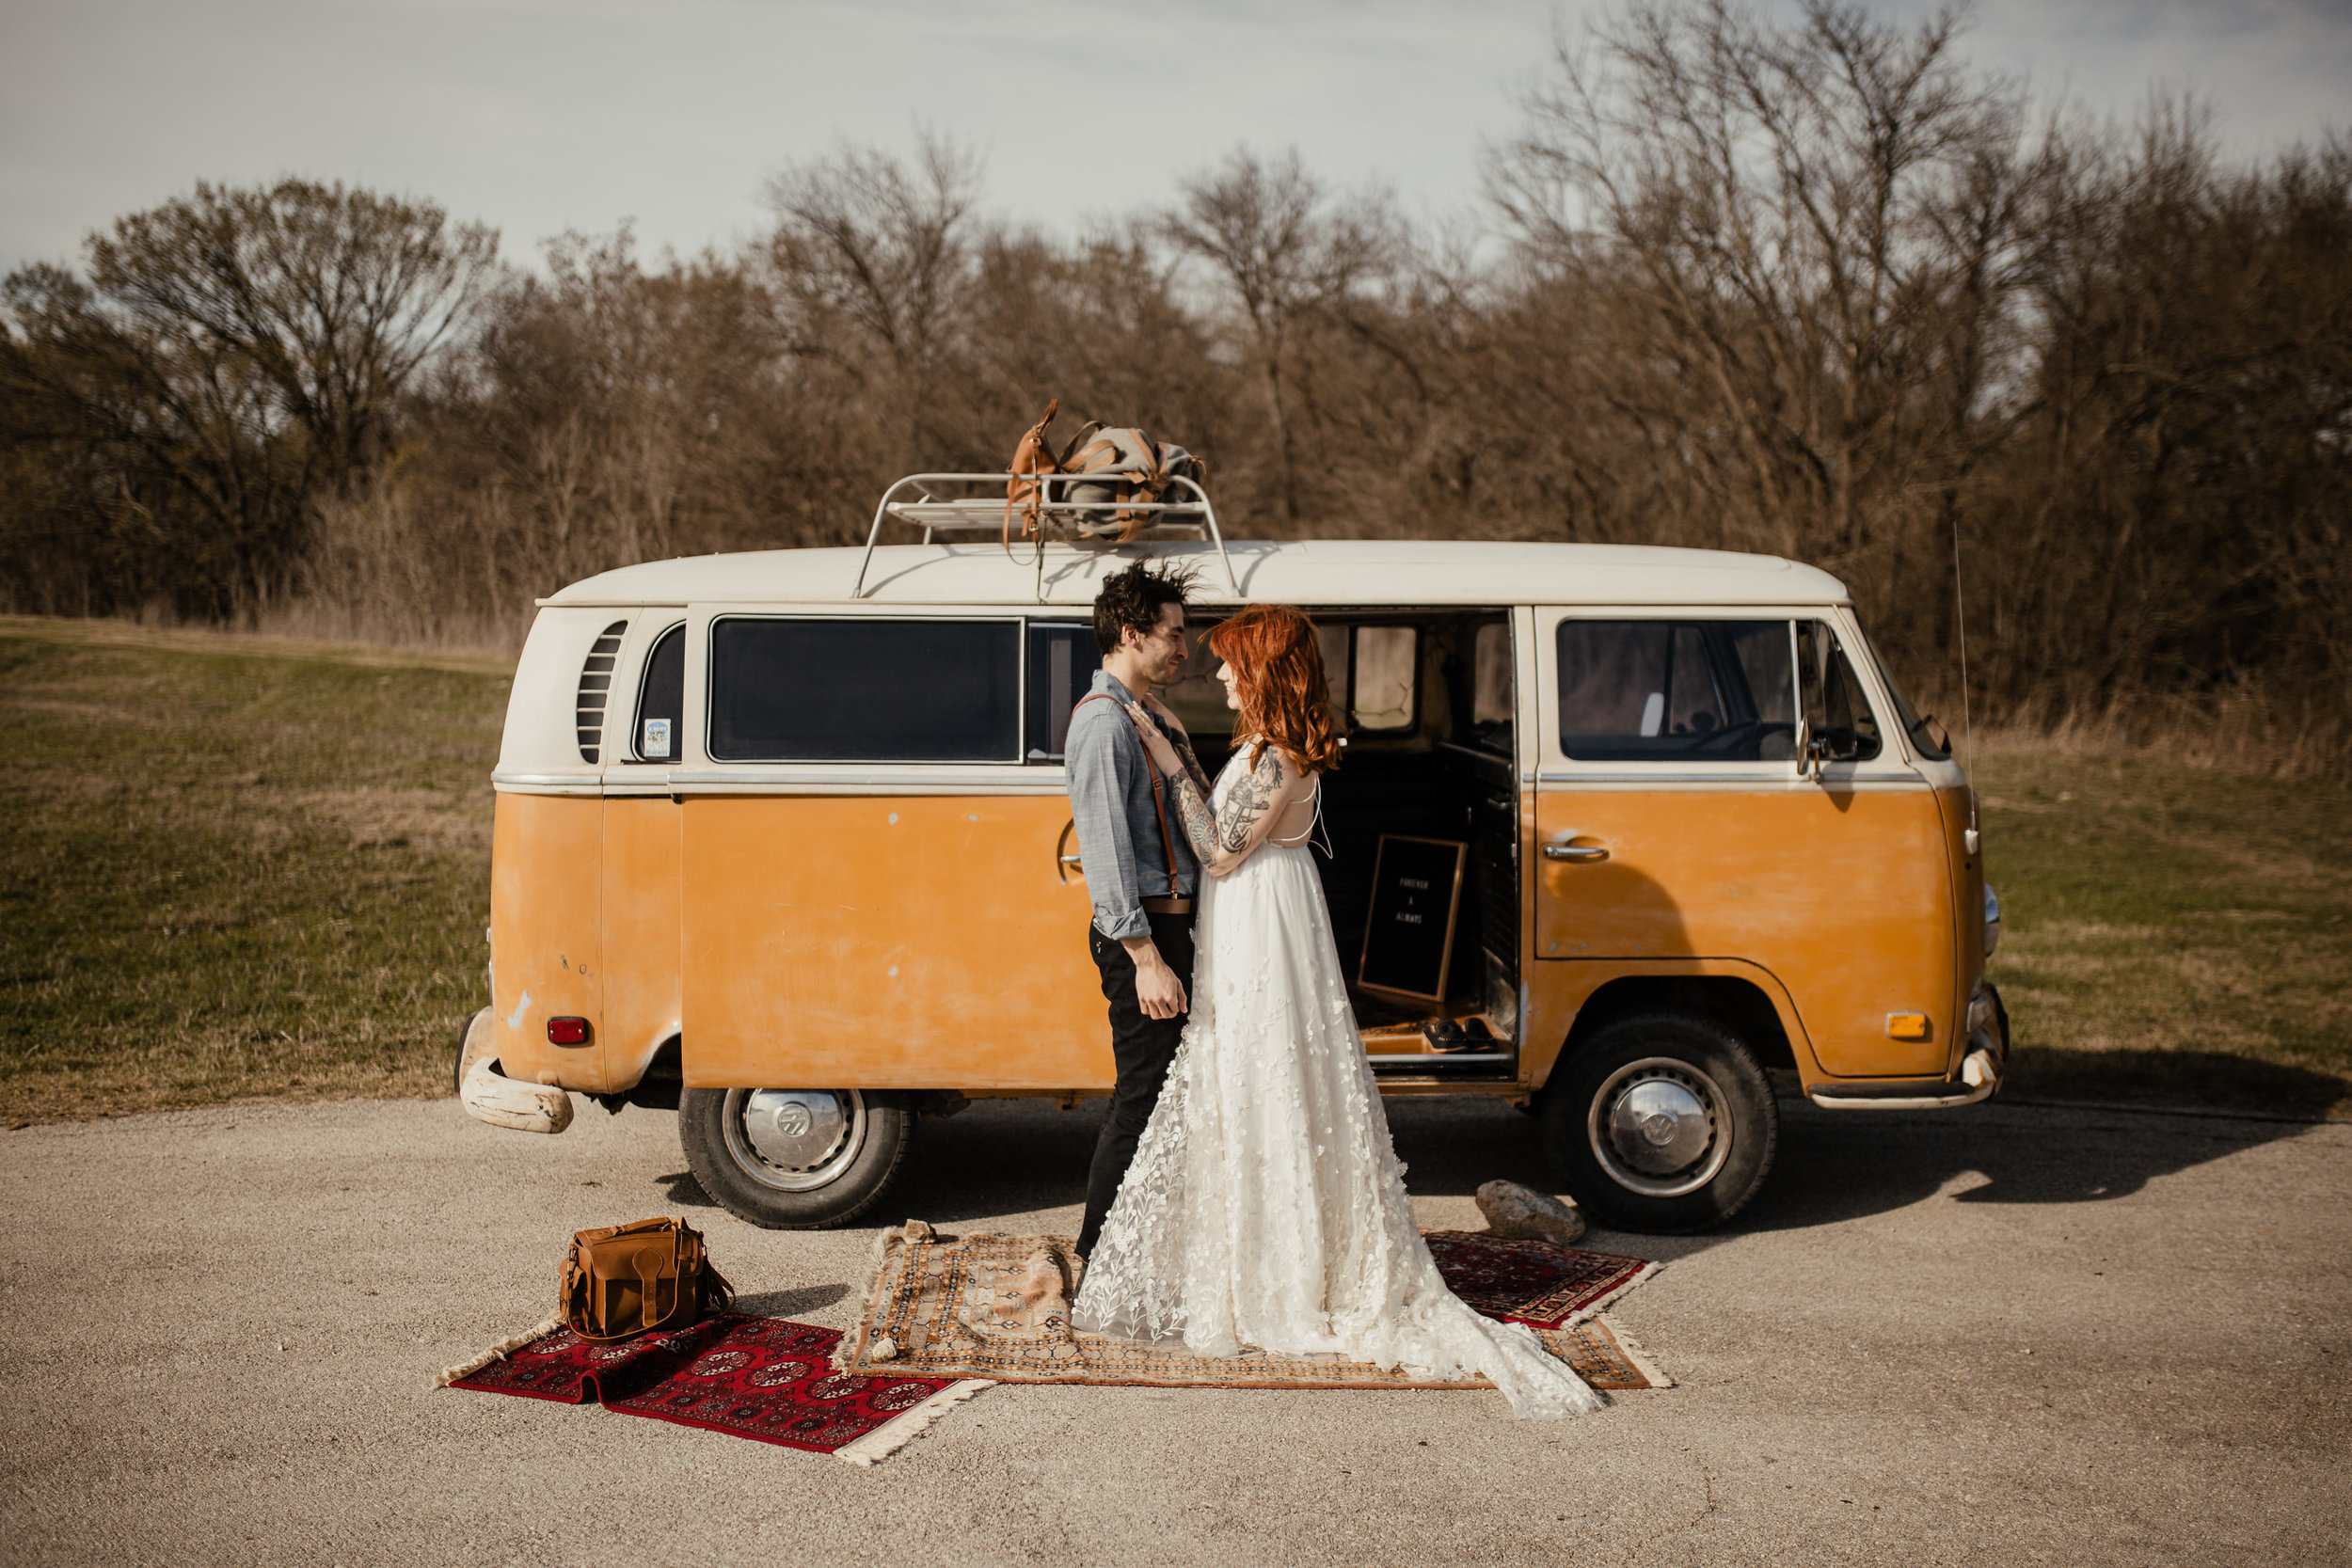 WEDDINGS  Rosemary would love to be a part of your special day. Forget a photo booth when you can have a photo bus. Package includes Rosemary and choice of couch or chair.  $475 - 2 hour session $850 - 4 hour session